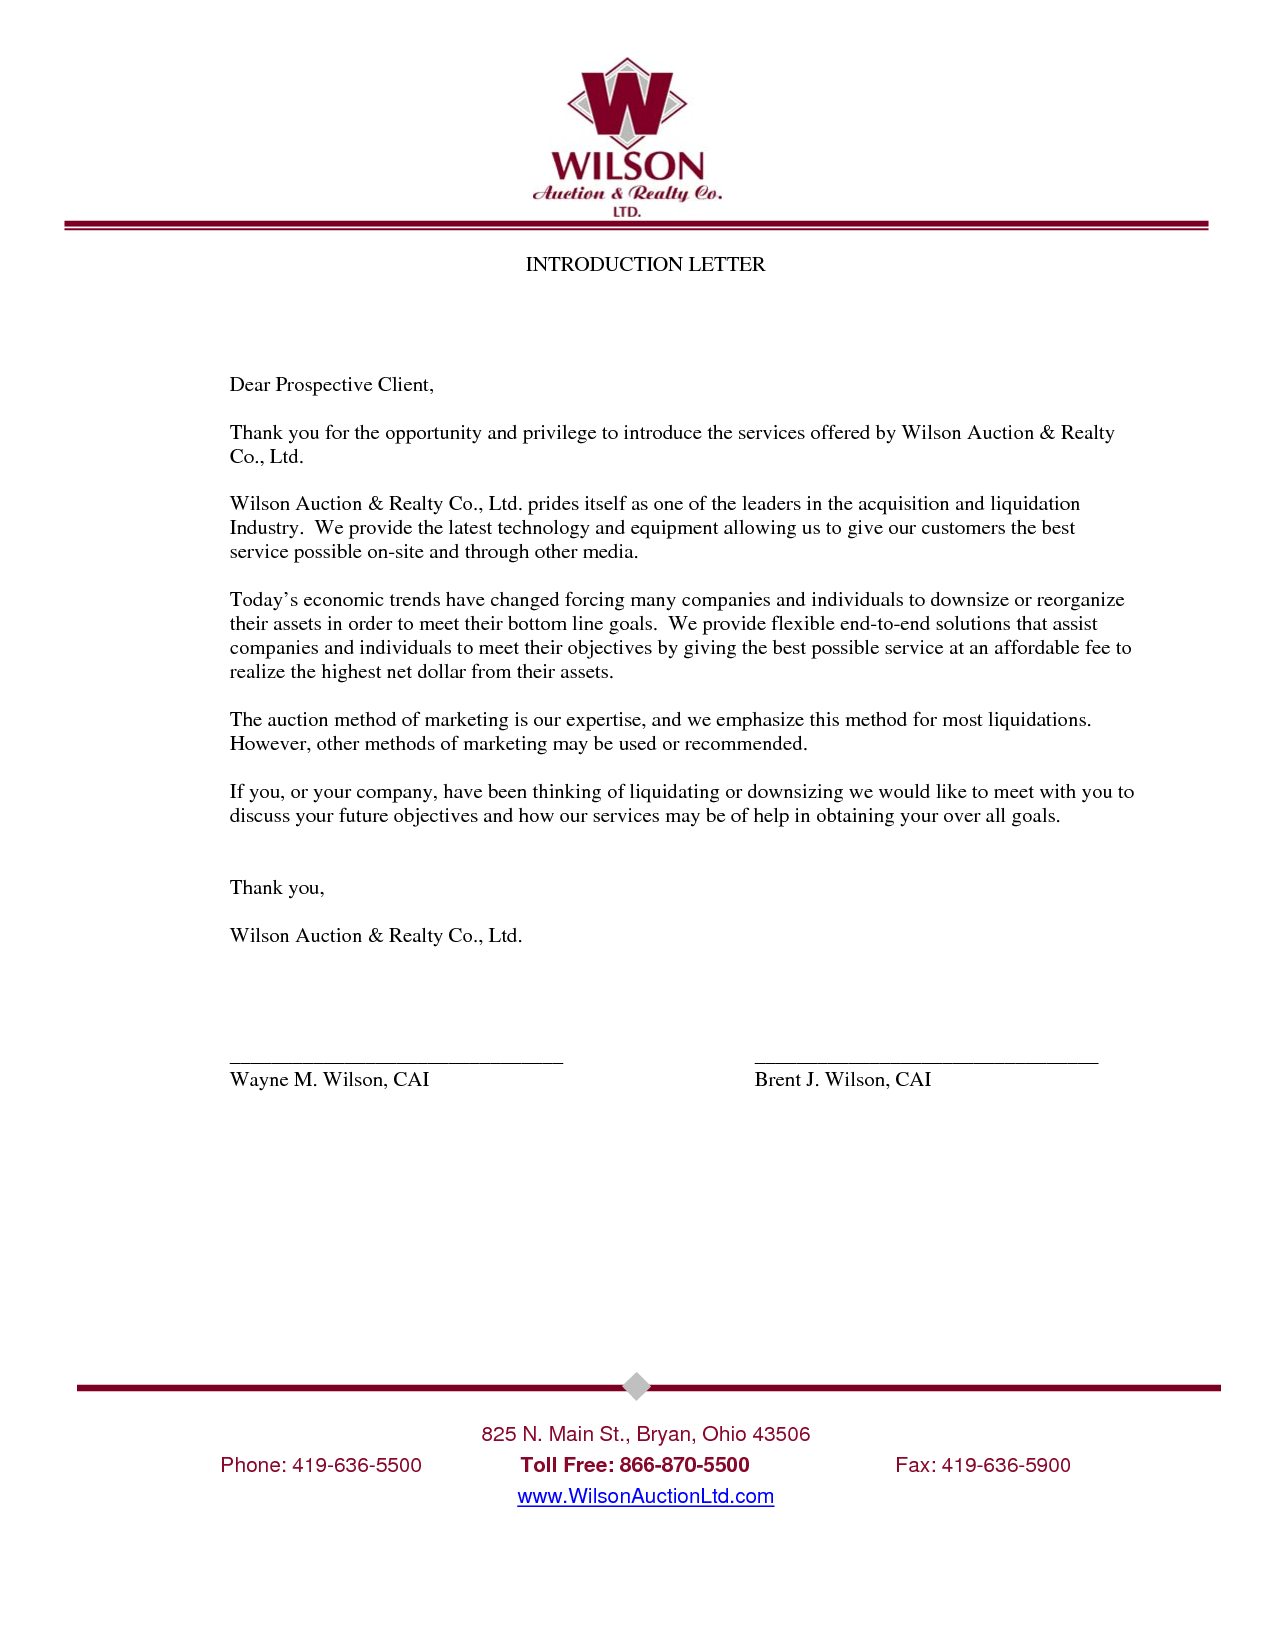 business introduction letter template introduction letter template